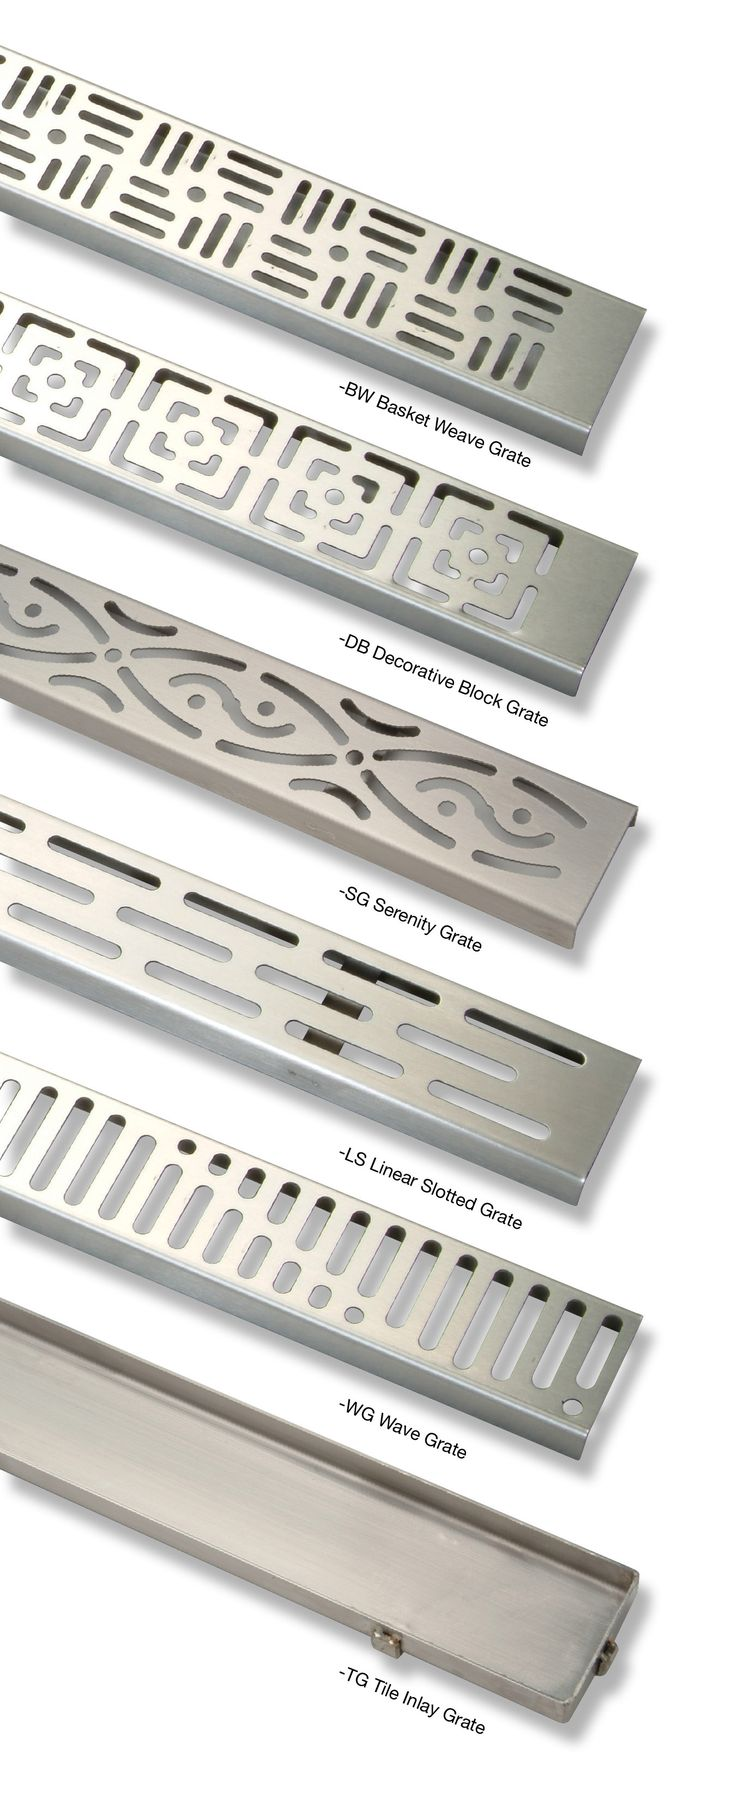 Zurn ZS880 stainless steel linear shower drains | Curbless shower drains